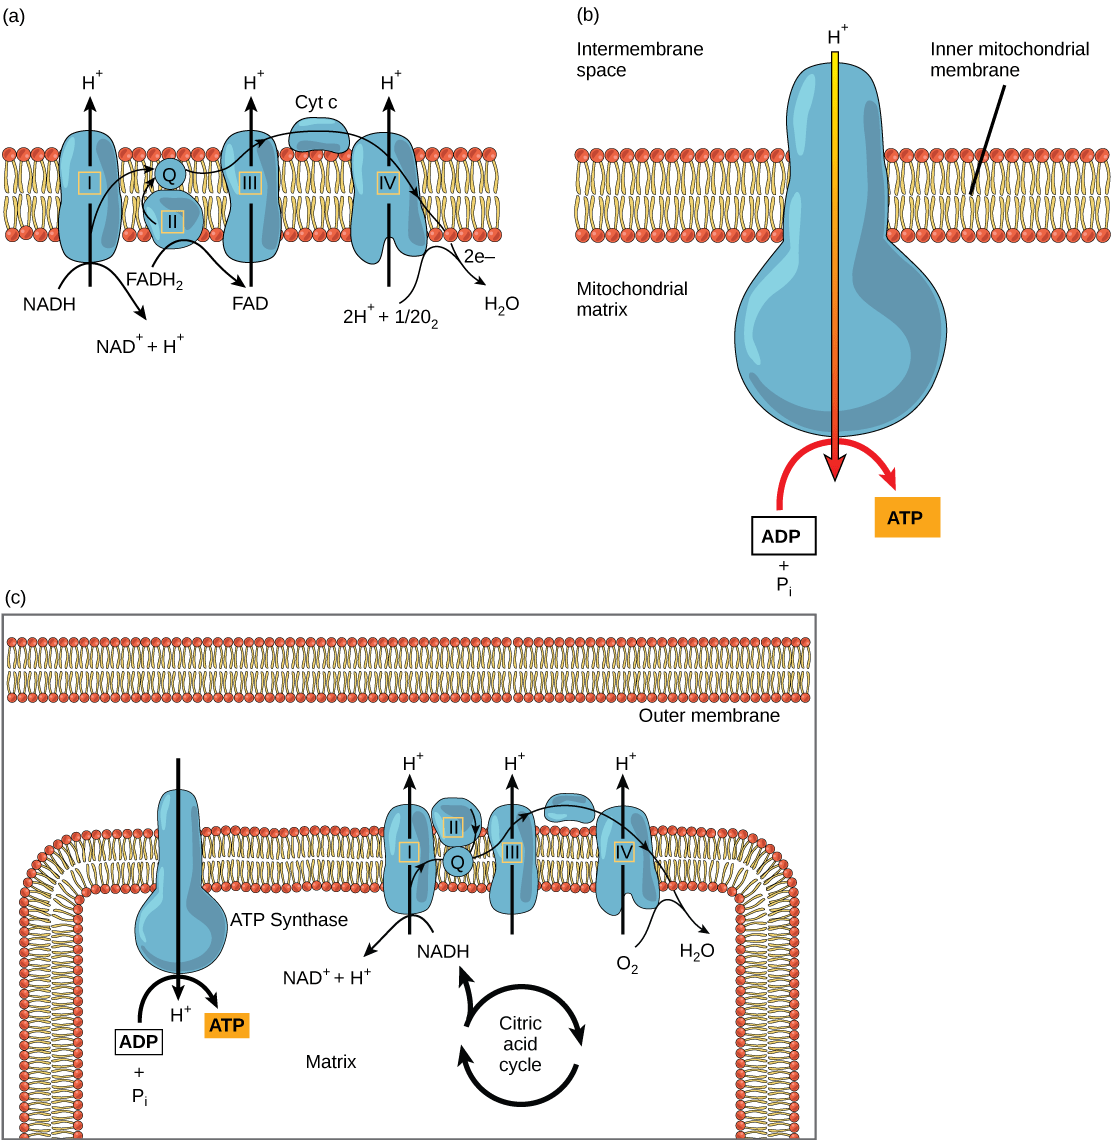 diagram with inputs and outputs of photosynthesis process 1990 honda accord tail light wiring 4 3 citric acid cycle oxidative phosphorylation concepts part a this illustration shows the electron transport chain embedded in inner mitochondrial membrane figure